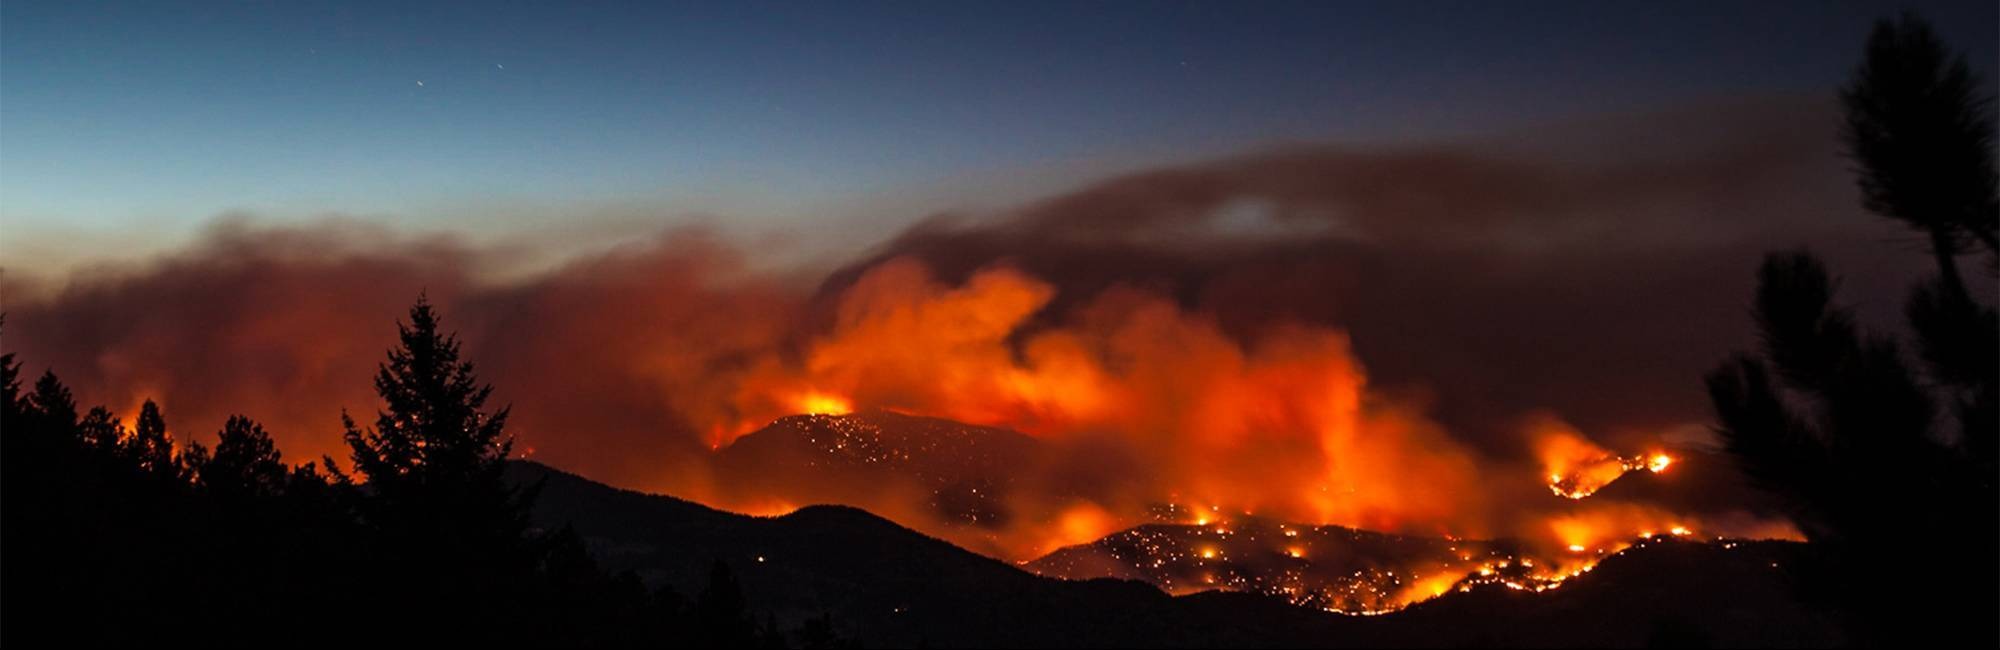 photo of wildfire burning at night